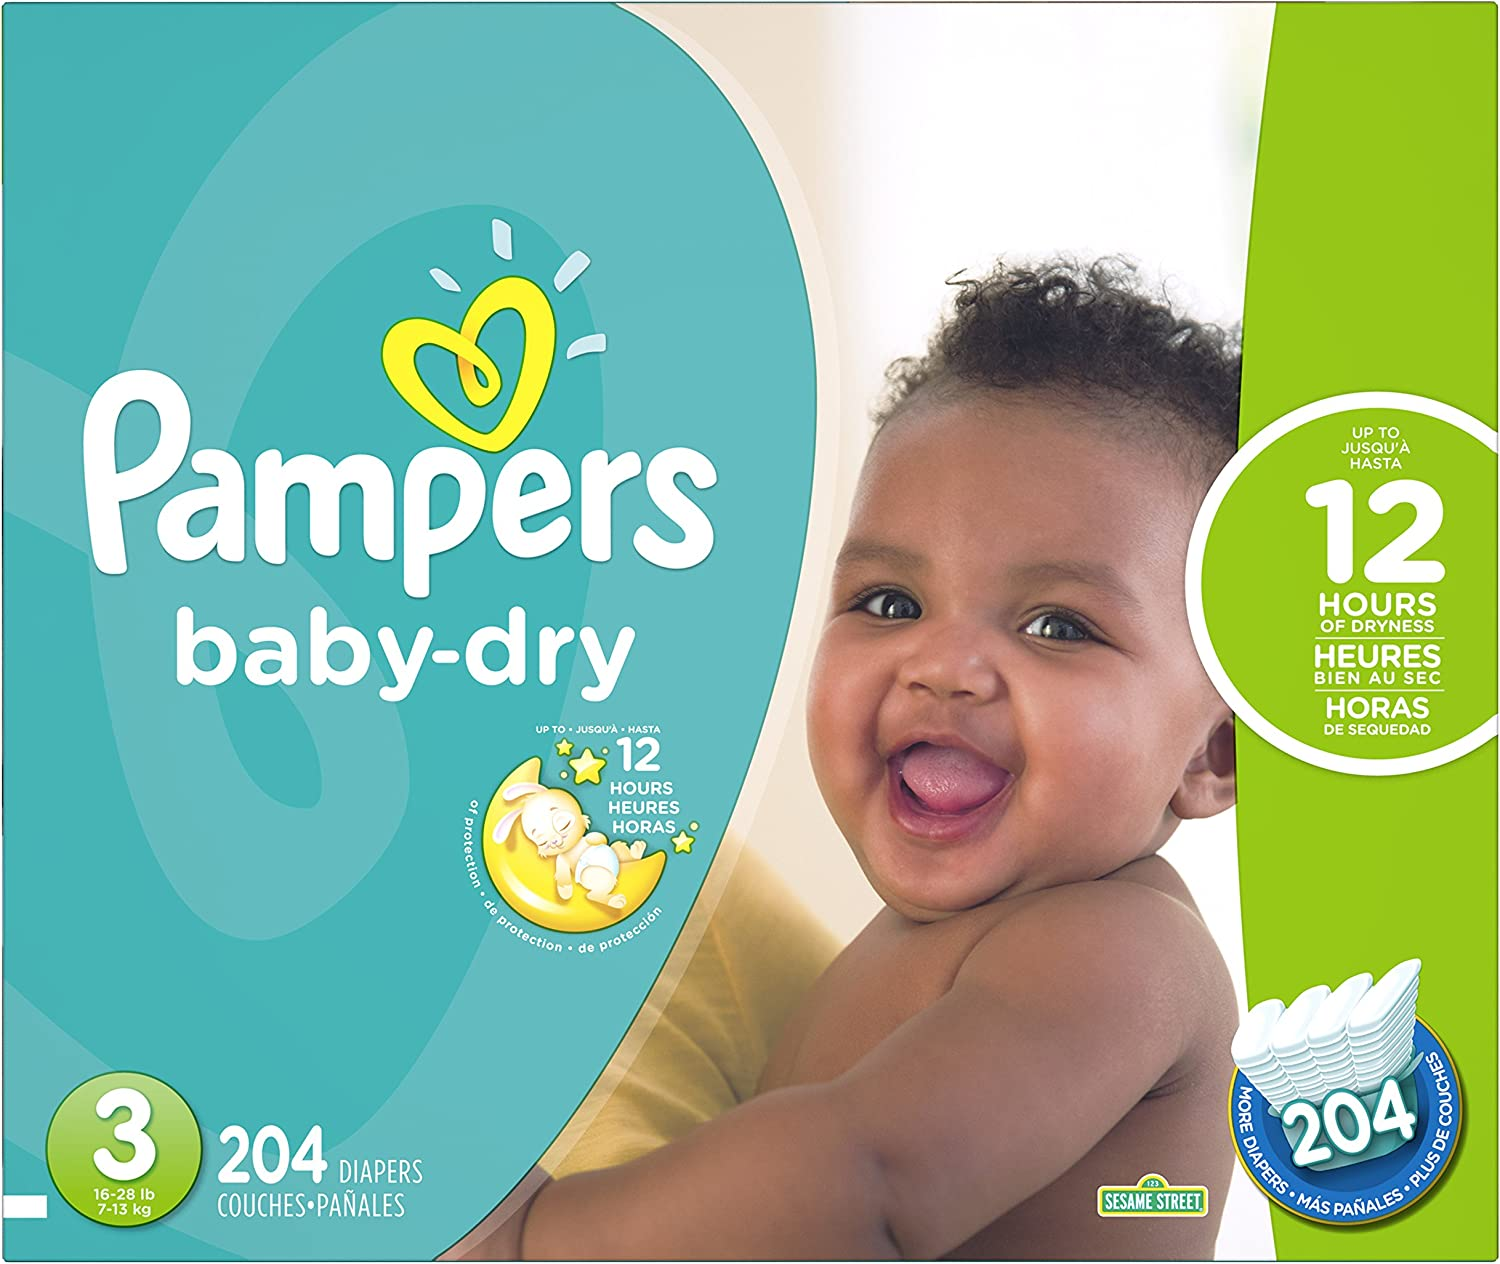 252 Count ECONOMY PACK PLUS Pampers Baby-Dry Disposable Diapers Size 1